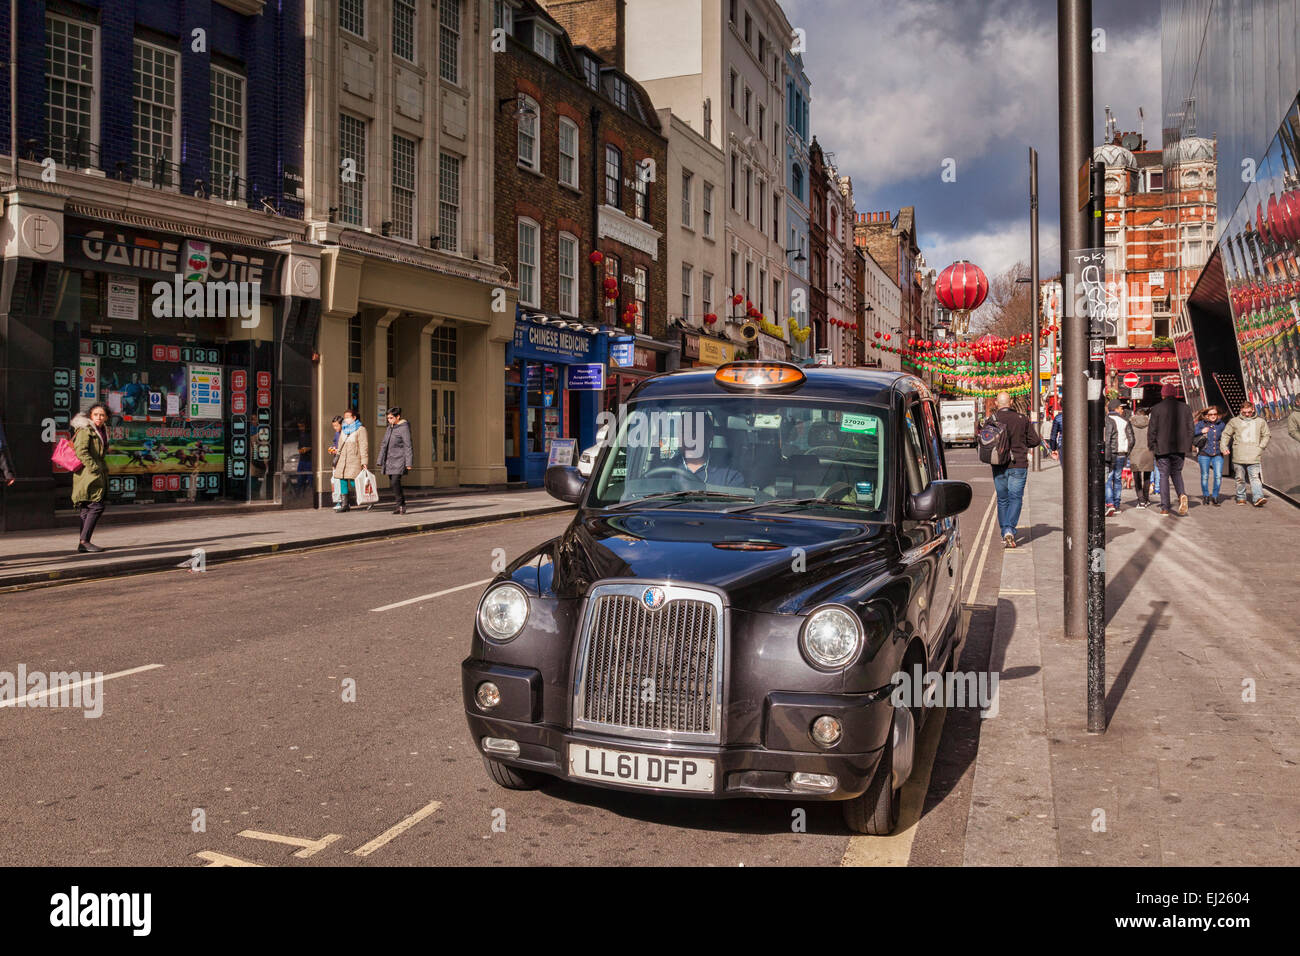 London taxi cab, Chinatown, London, England. - Stock Image